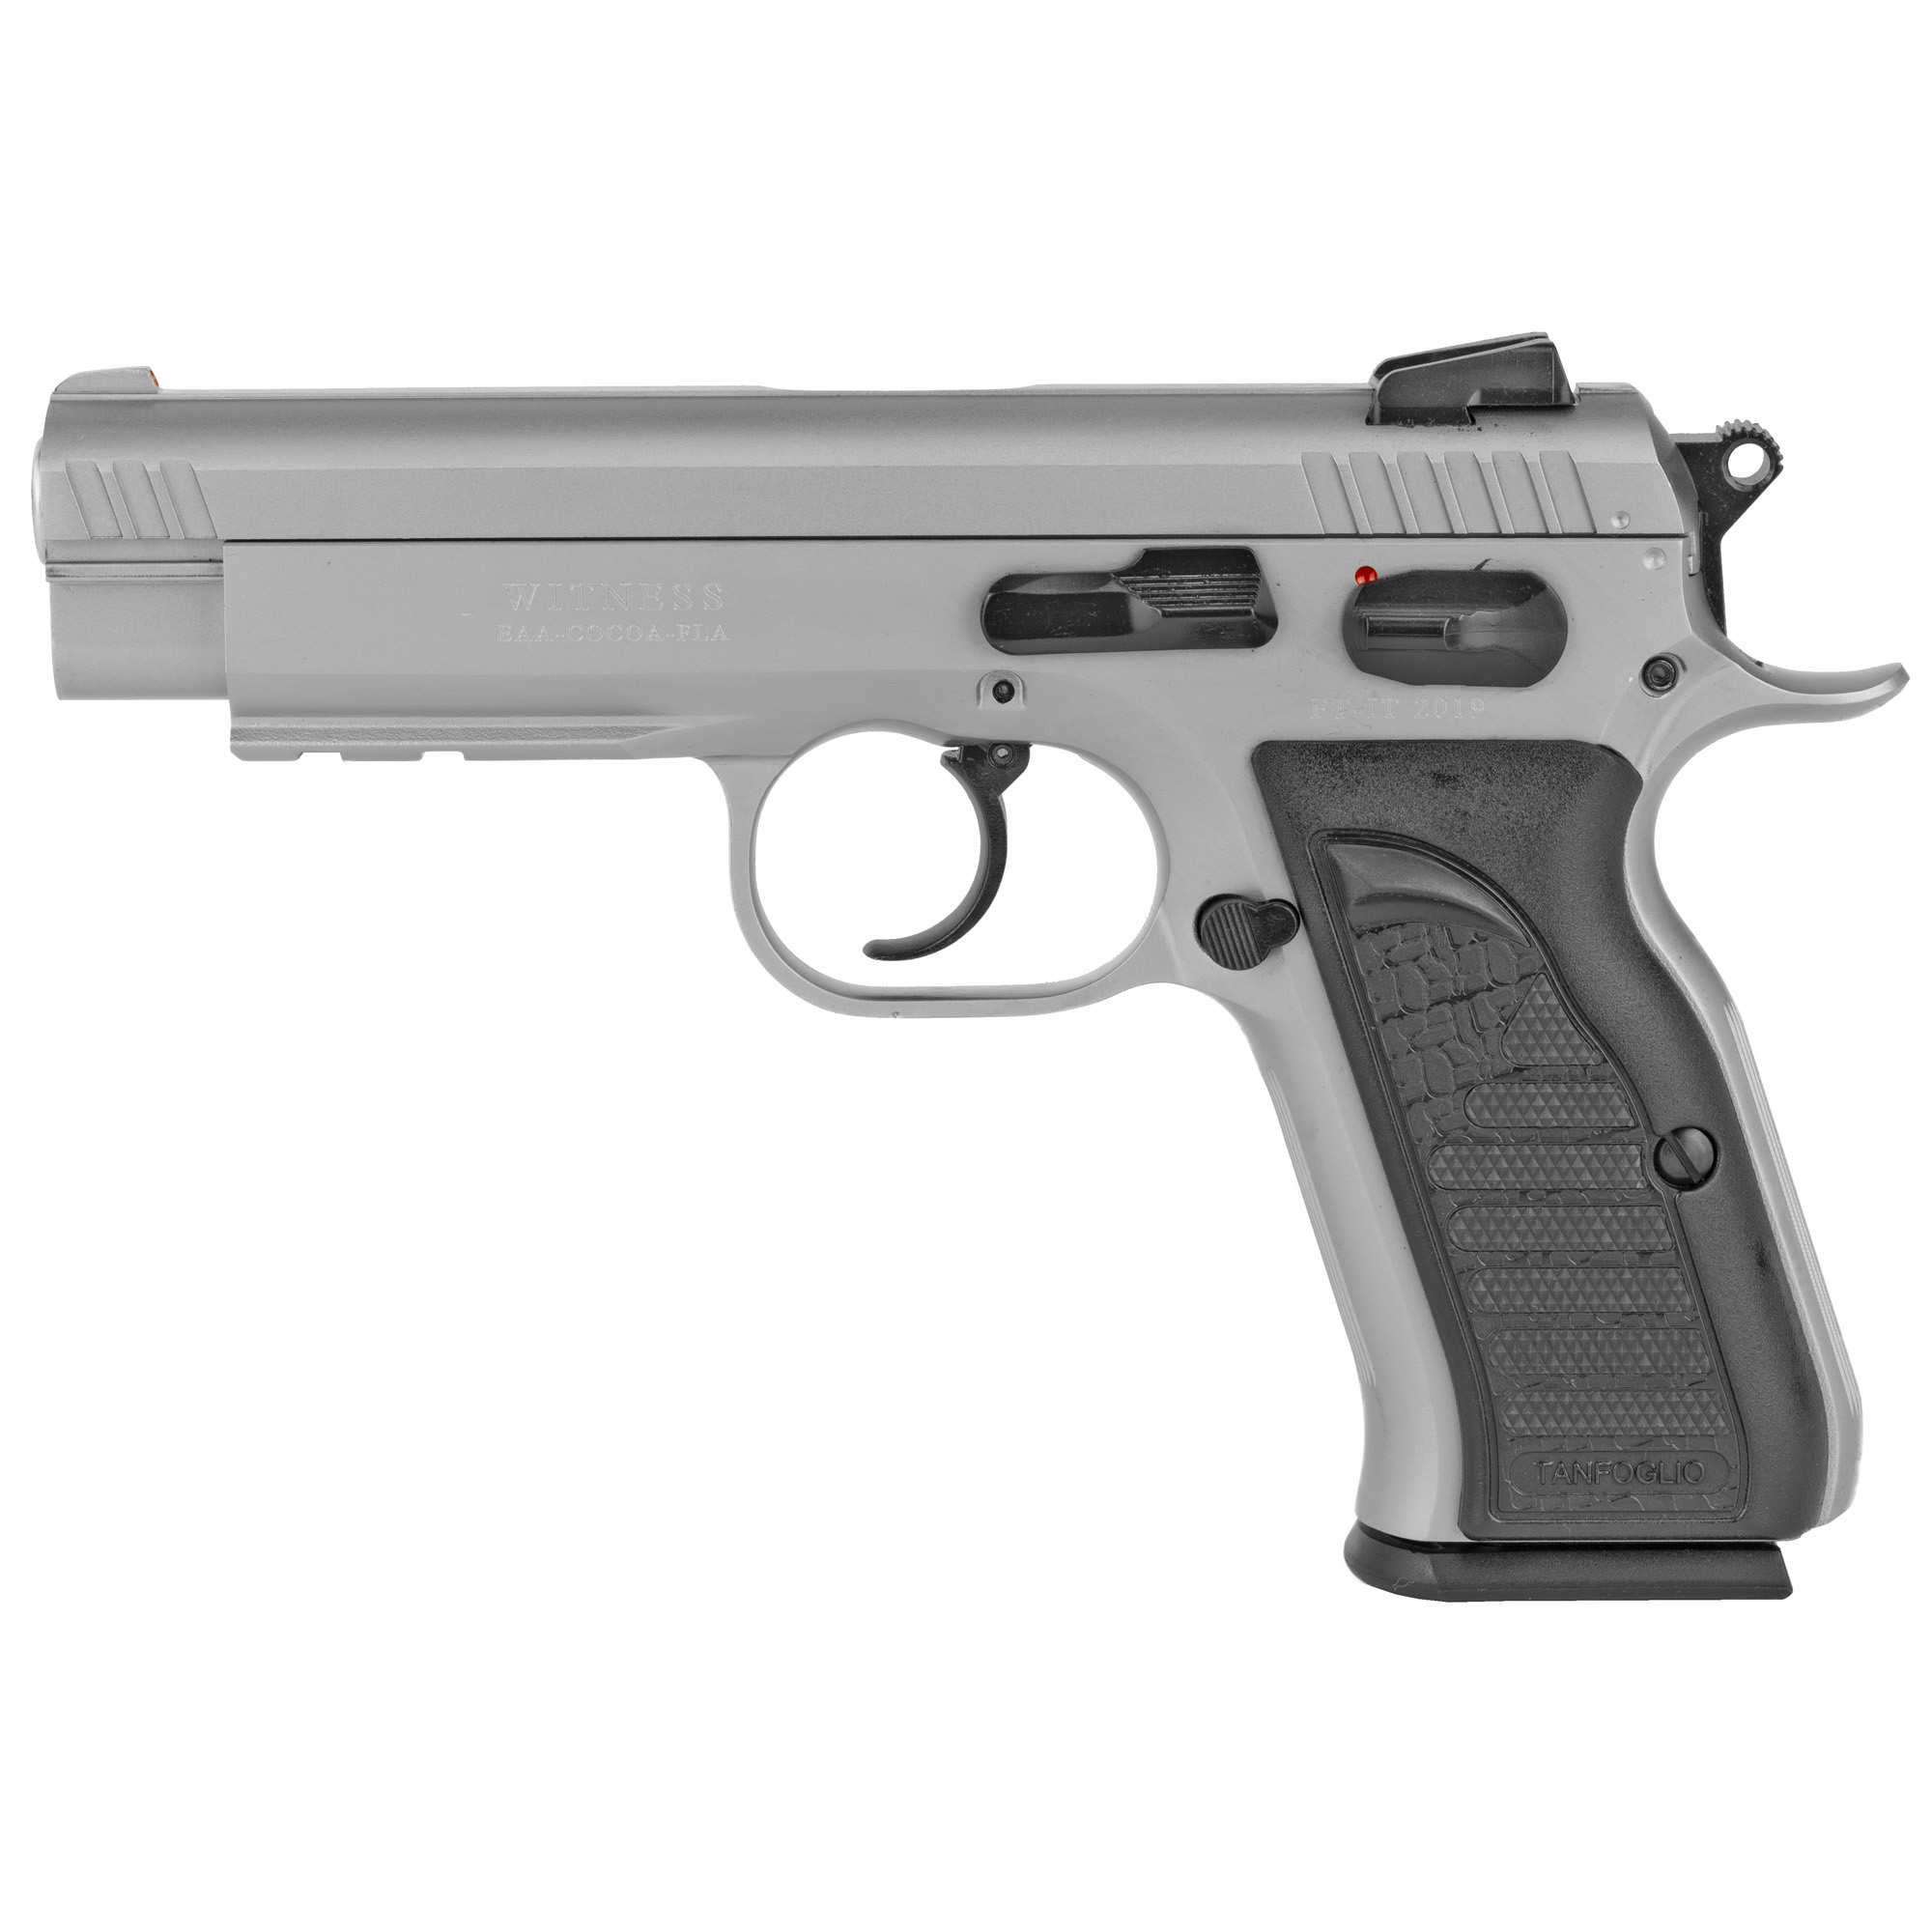 "Say you want a pistol for self defense"" home defense or lawful concealed carry. There are so many choices out there. You want a pistol that could be a carry gun as well as enjoyable to shoot and chambered in a caliber that can knock down an assailant. Get a standard Witness in steel!"